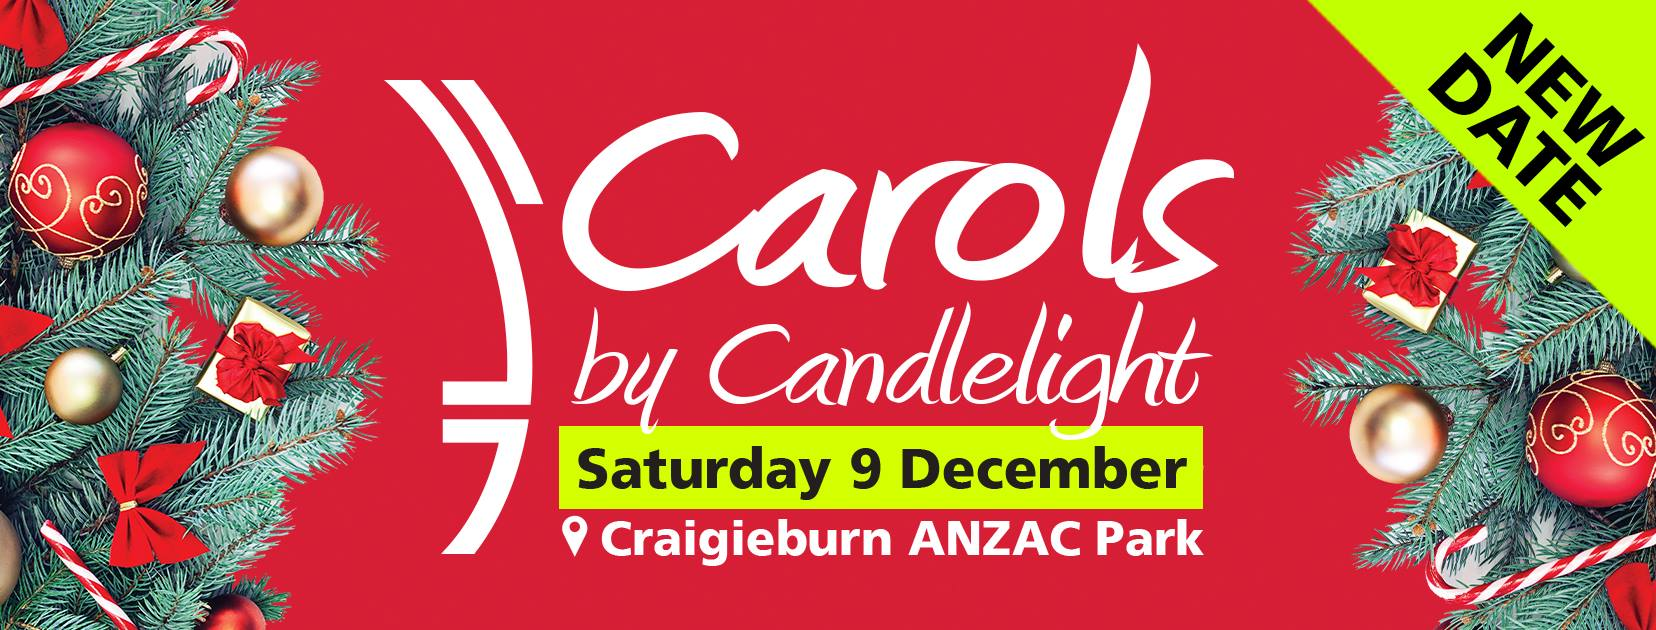 Carols by Candlelight - Hume City Council  [Melbourne]